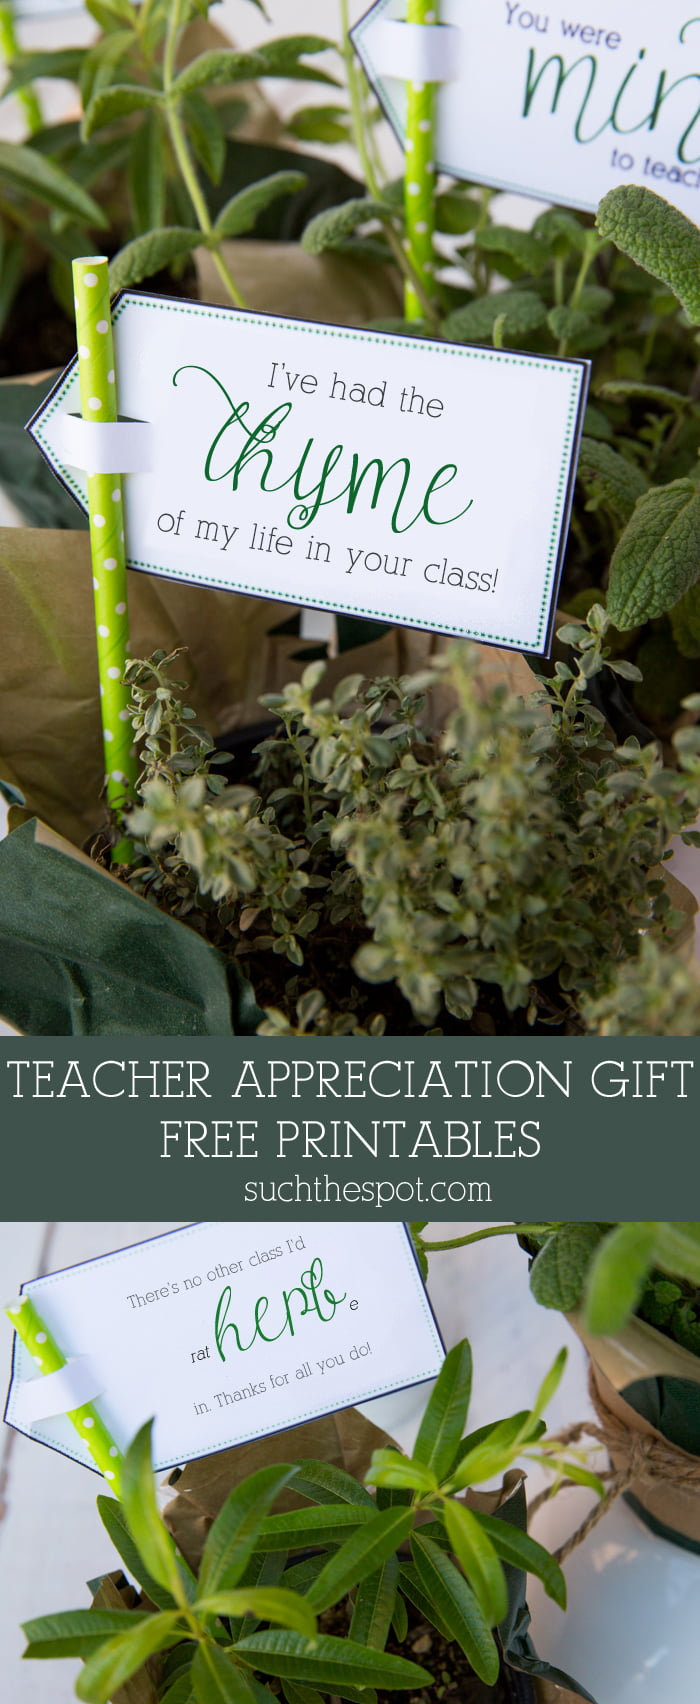 Teacher Appreciation Gift & Free Printable